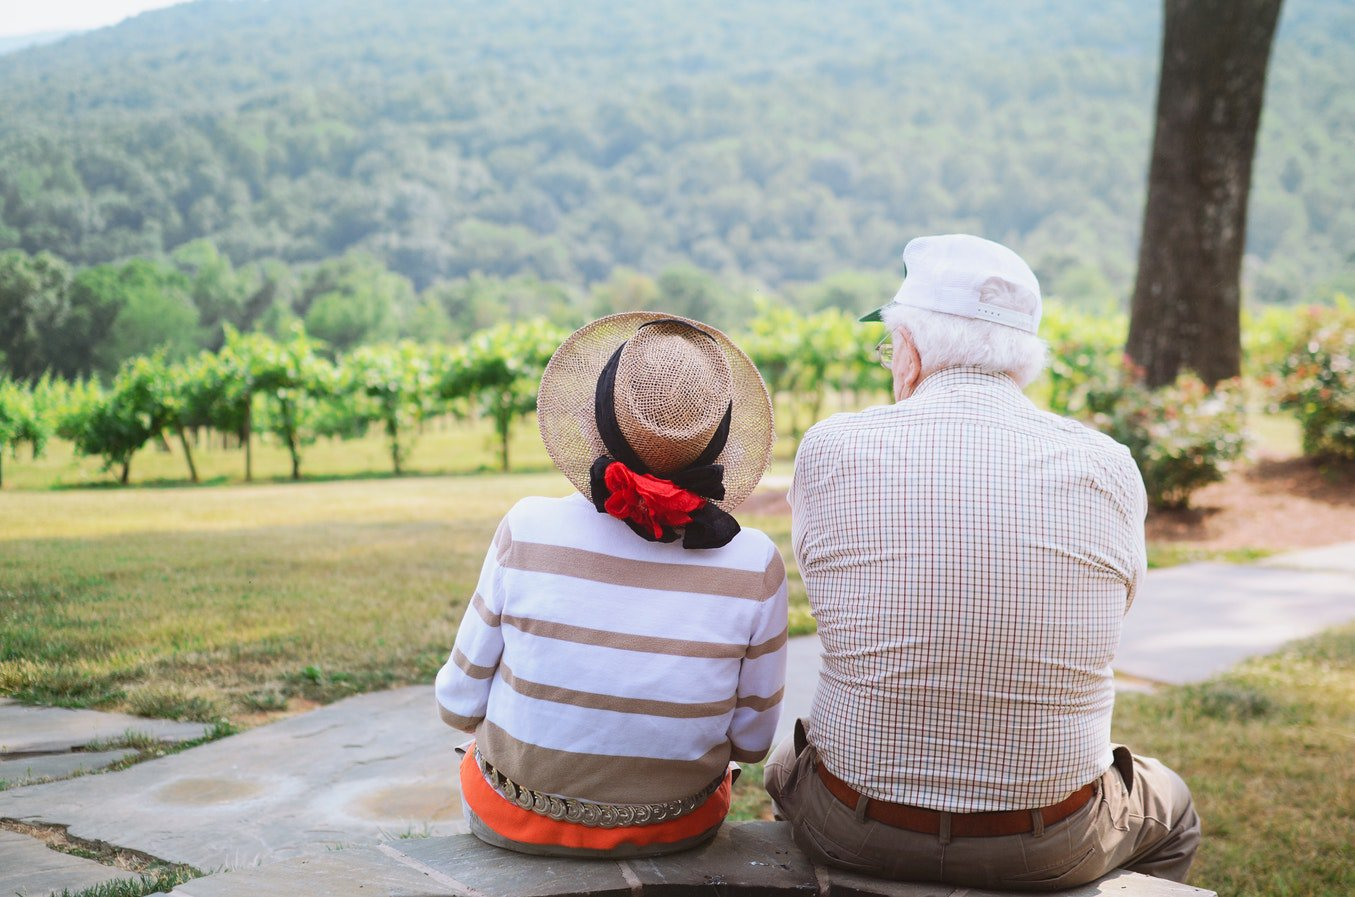 Two social seniors sitting together and looking at the outdoor scenery together.